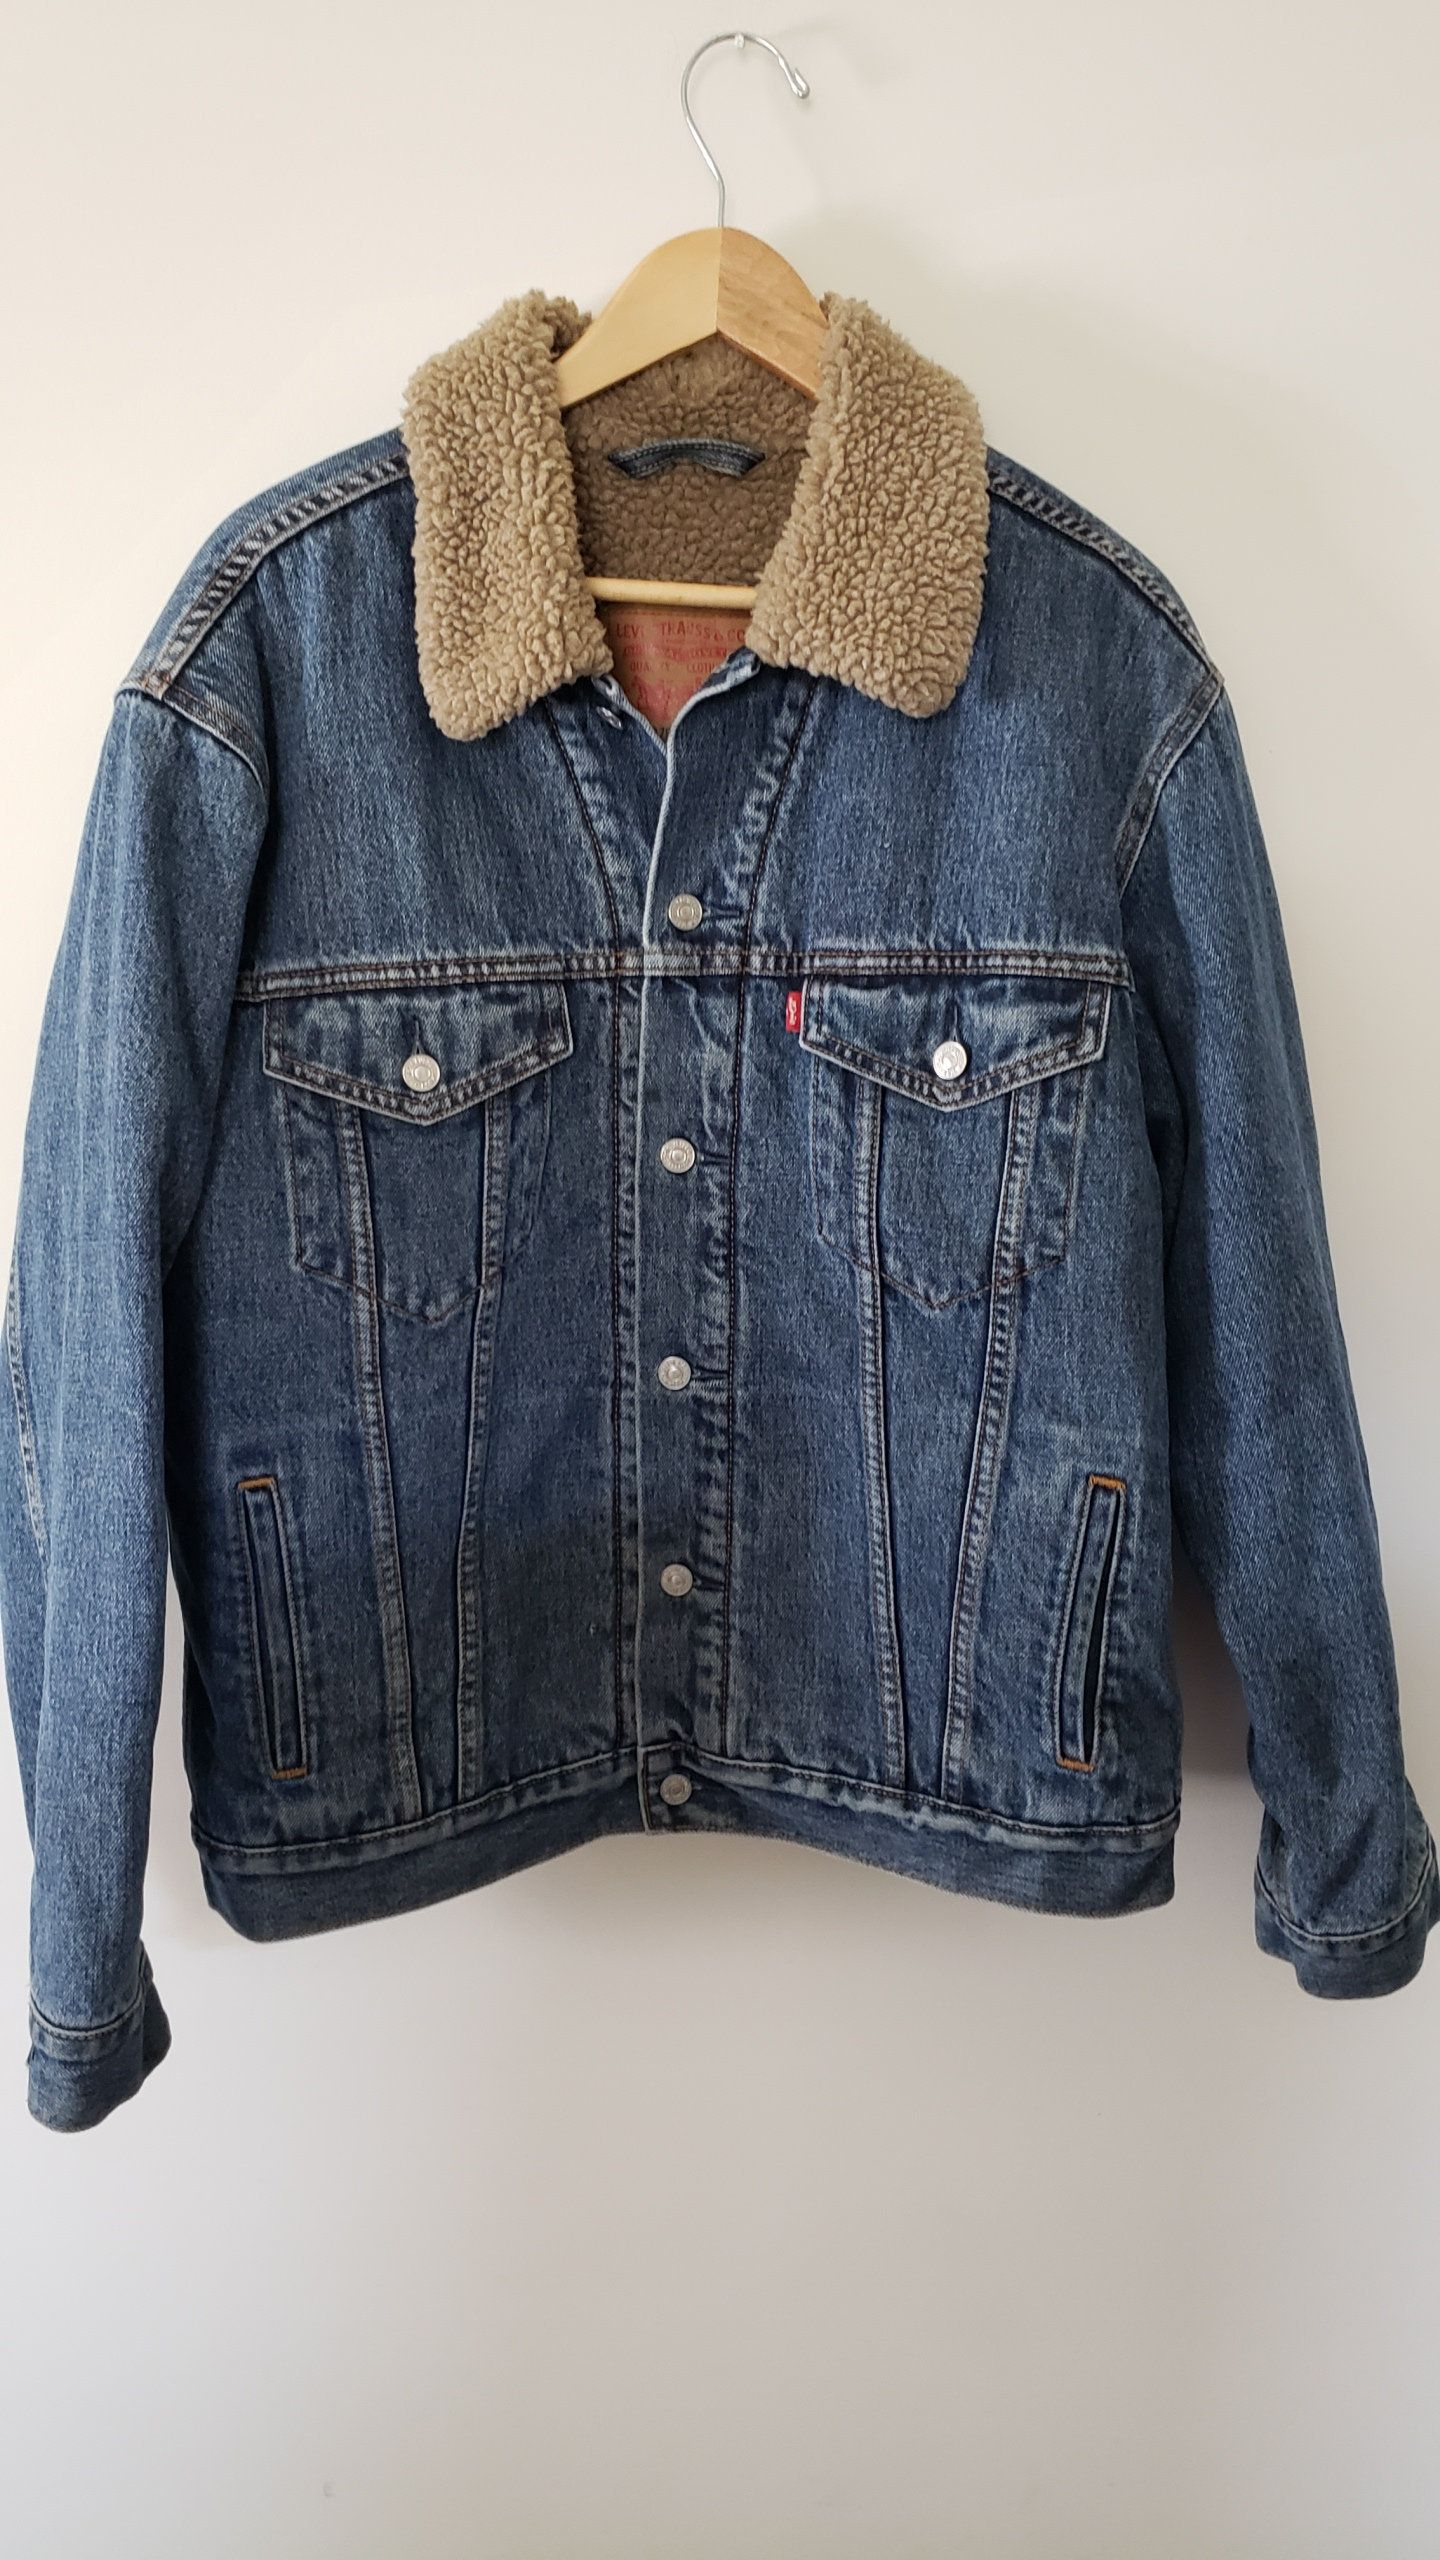 Vintage 90 S Levis Denim Sherpa Jean Jacket Coat Size Xl Winter Cowboy Western Trendy Cold Style By Rackr Fashion Plaid Shirt Levis Denim Outfits With Hats